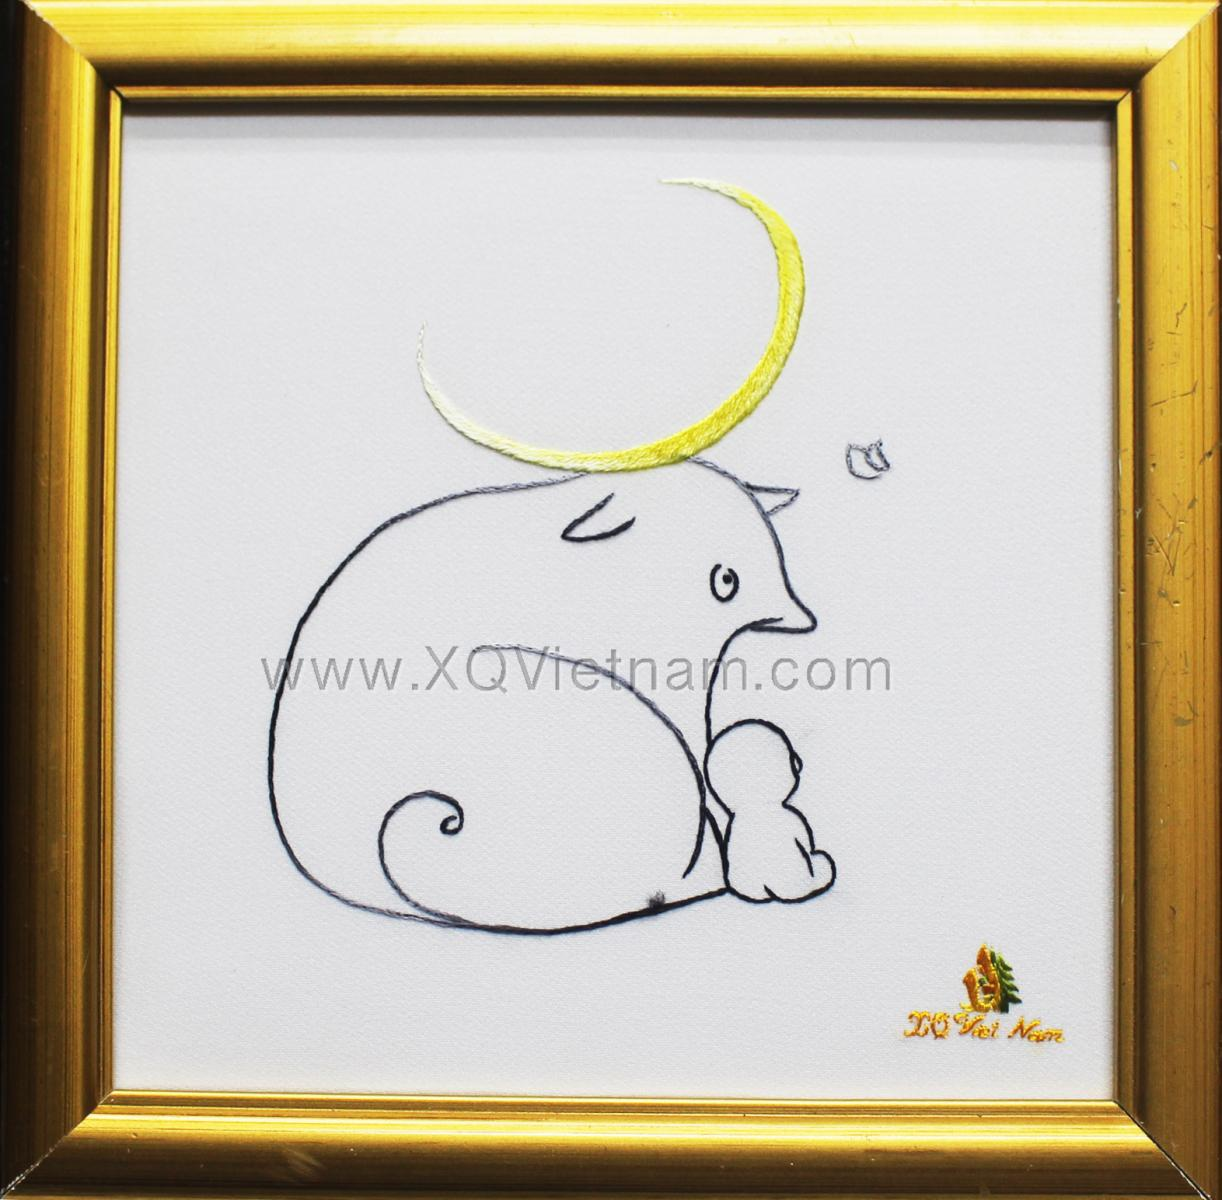 upload/images/6155-Tranh-bi-do-111.JPG